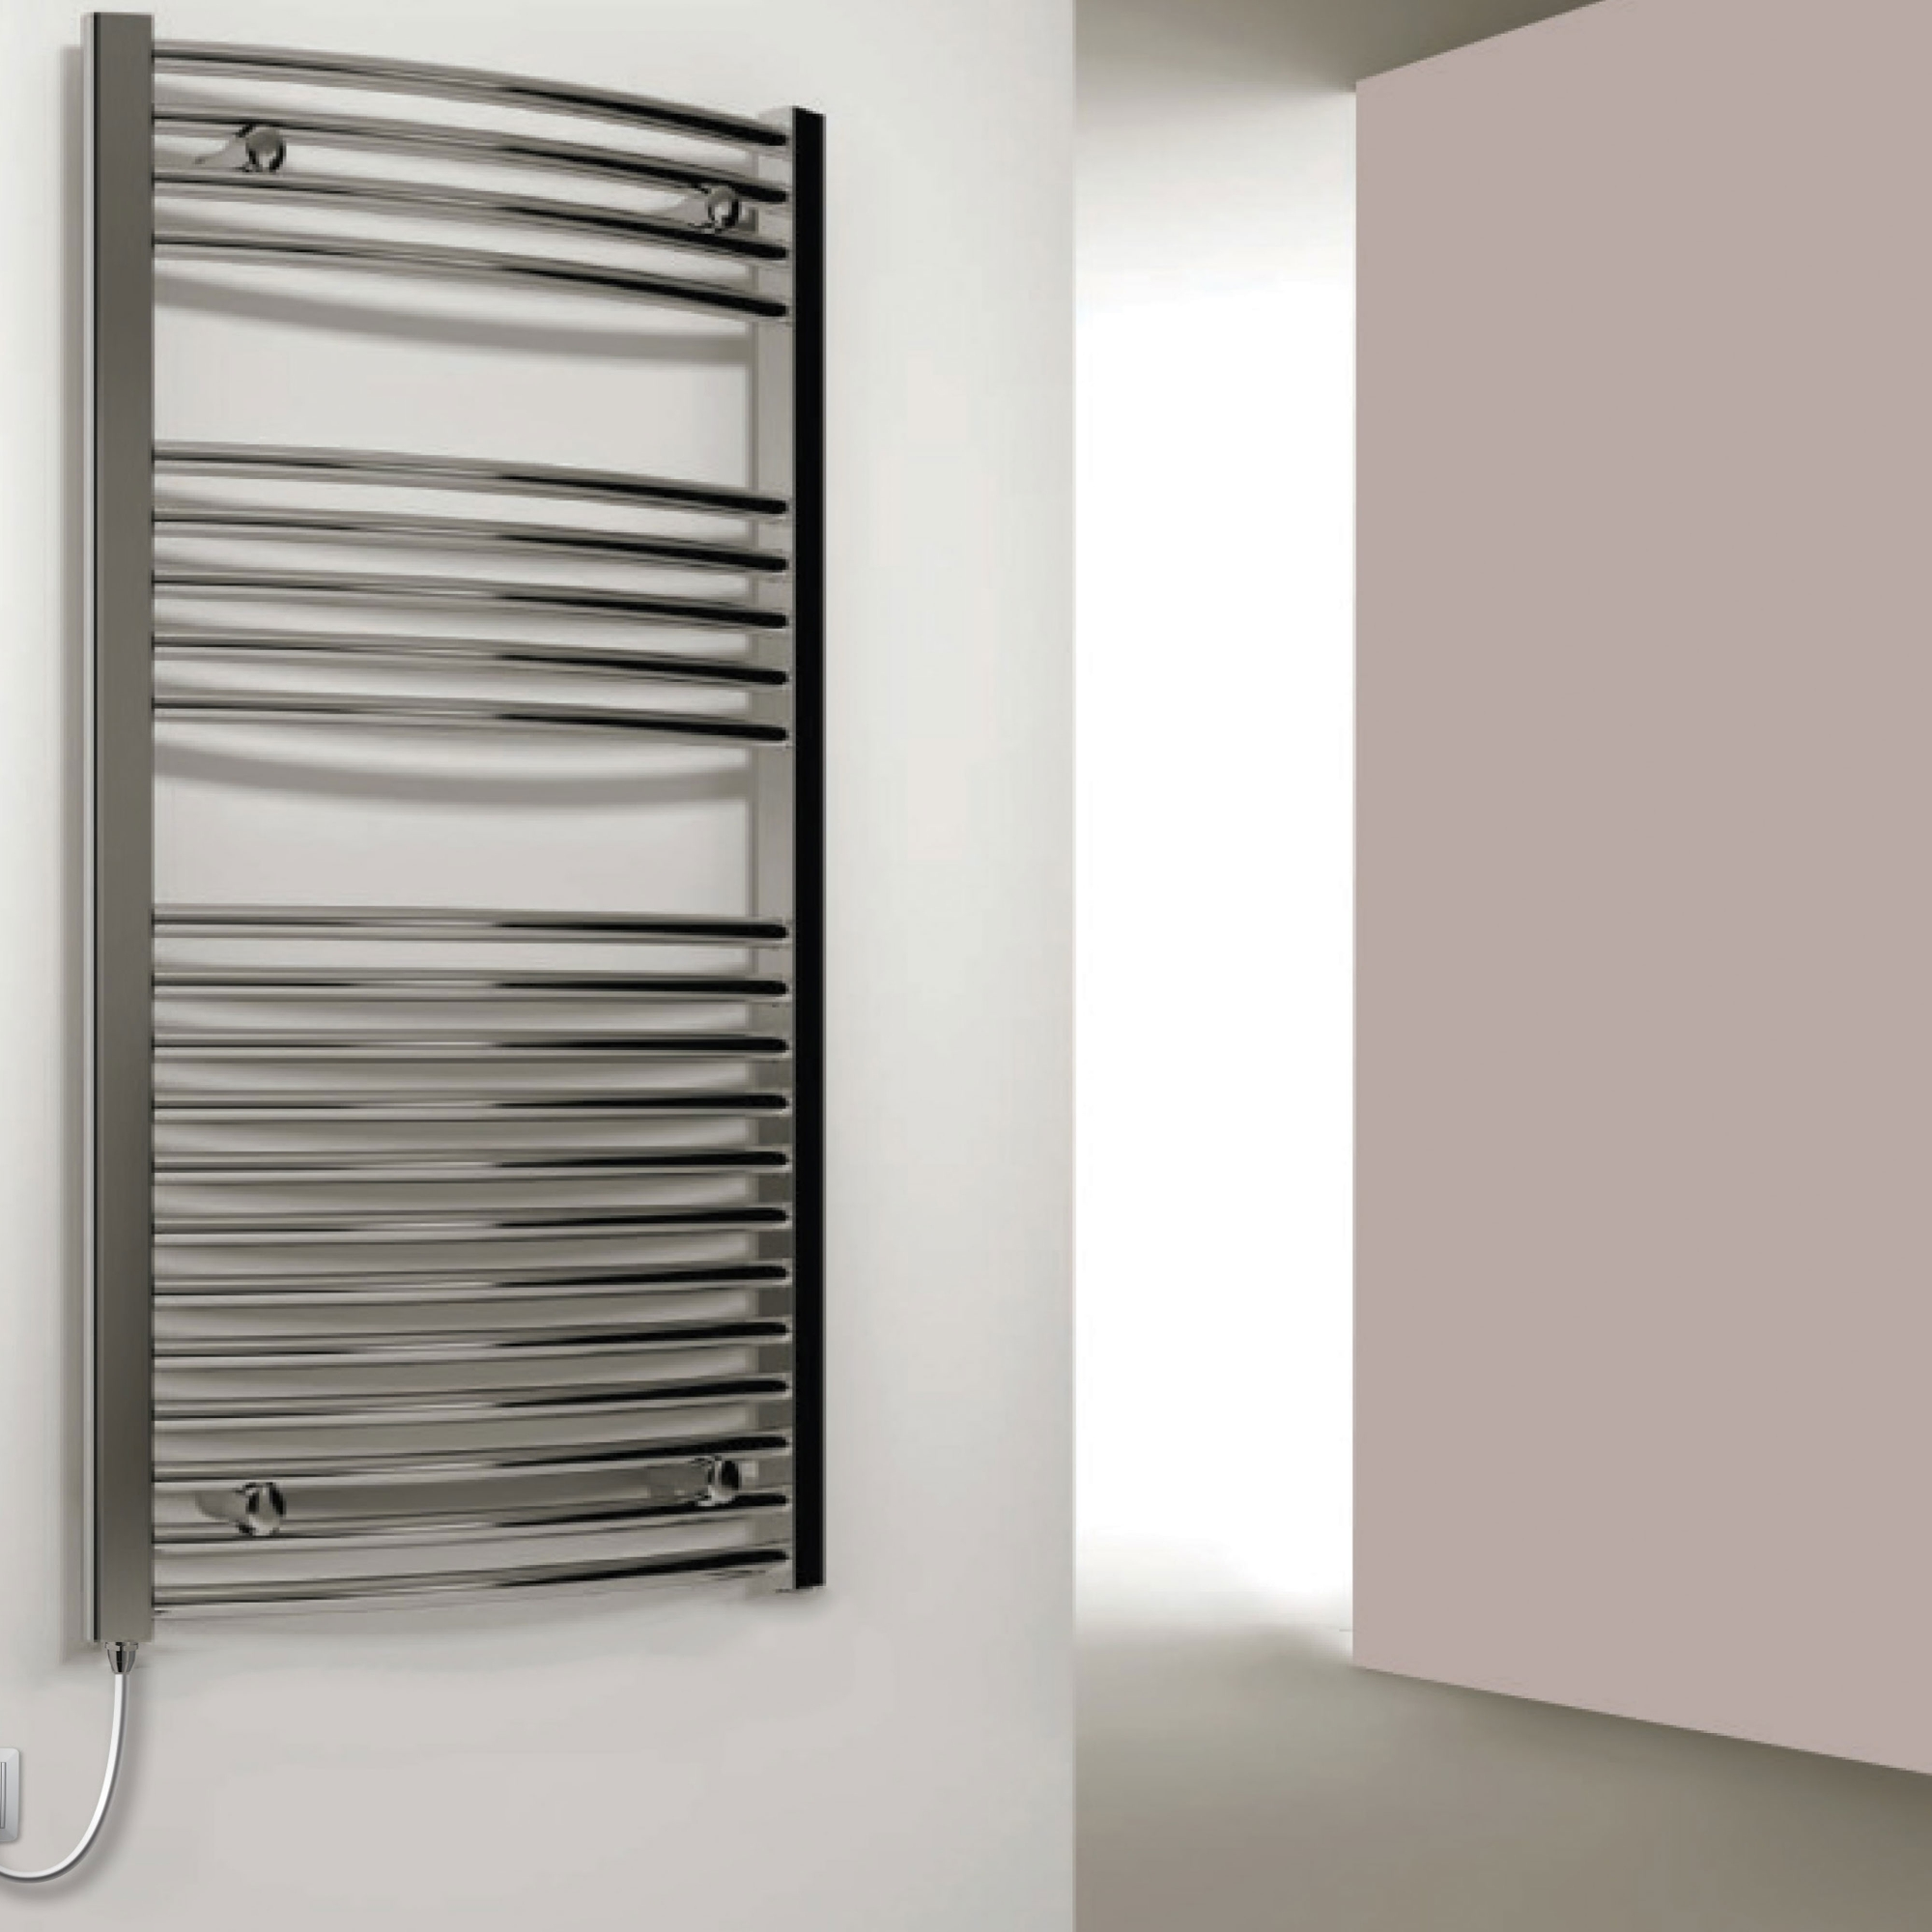 Reina Capo Curved Thermostatic Electric Heated Towel Rail 1600mm H x 600mm W Chrome-0